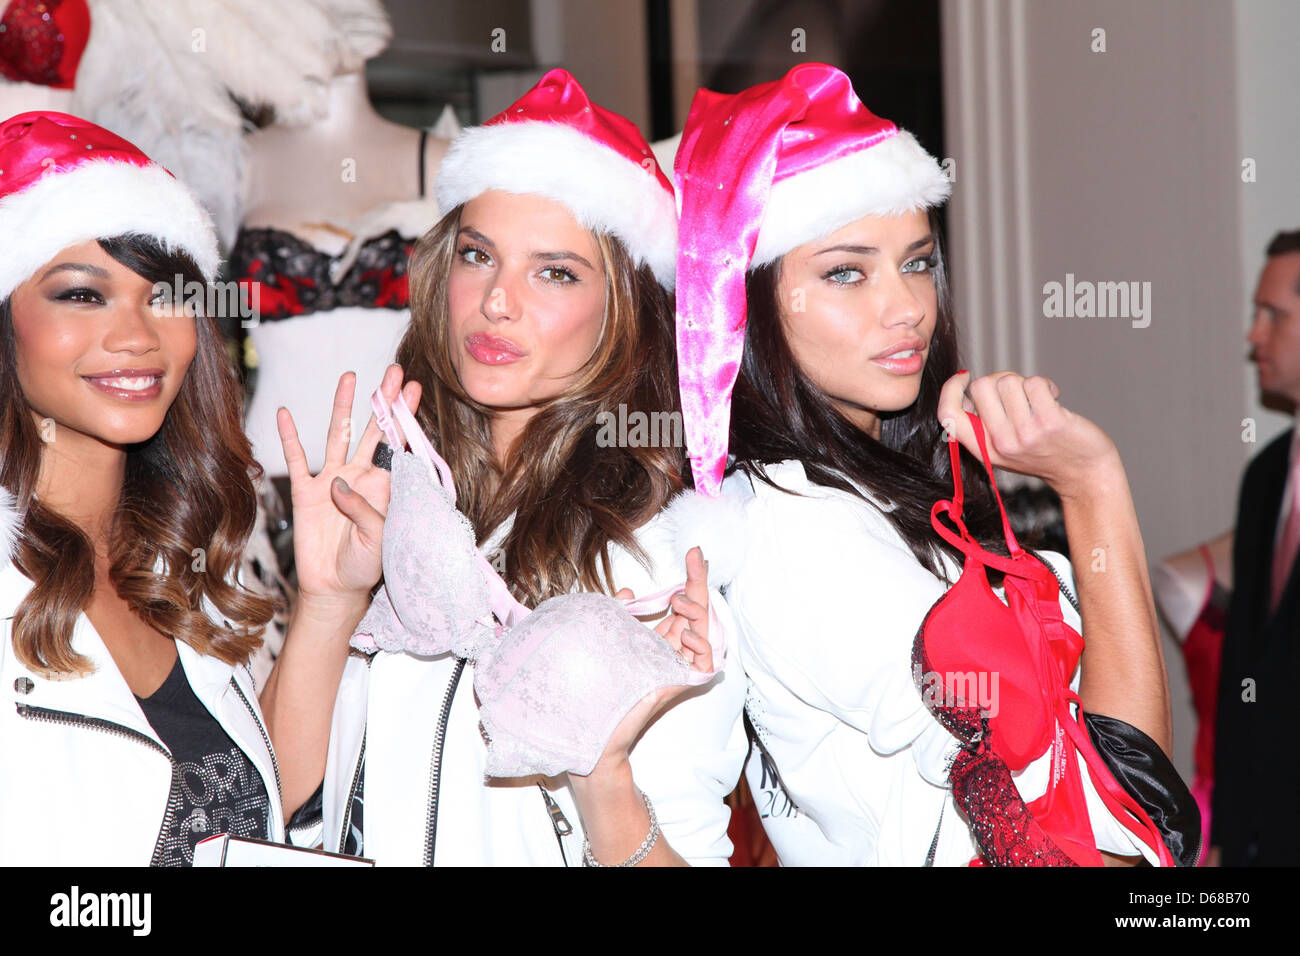 Chanel Iman Alessandra Ambrosio and Adriana Lima Victoriau0027s Secret Angels kick off the holiday season with their favorite  sc 1 st  Alamy & Chanel Iman Alessandra Ambrosio and Adriana Lima Victoriau0027s Secret ...